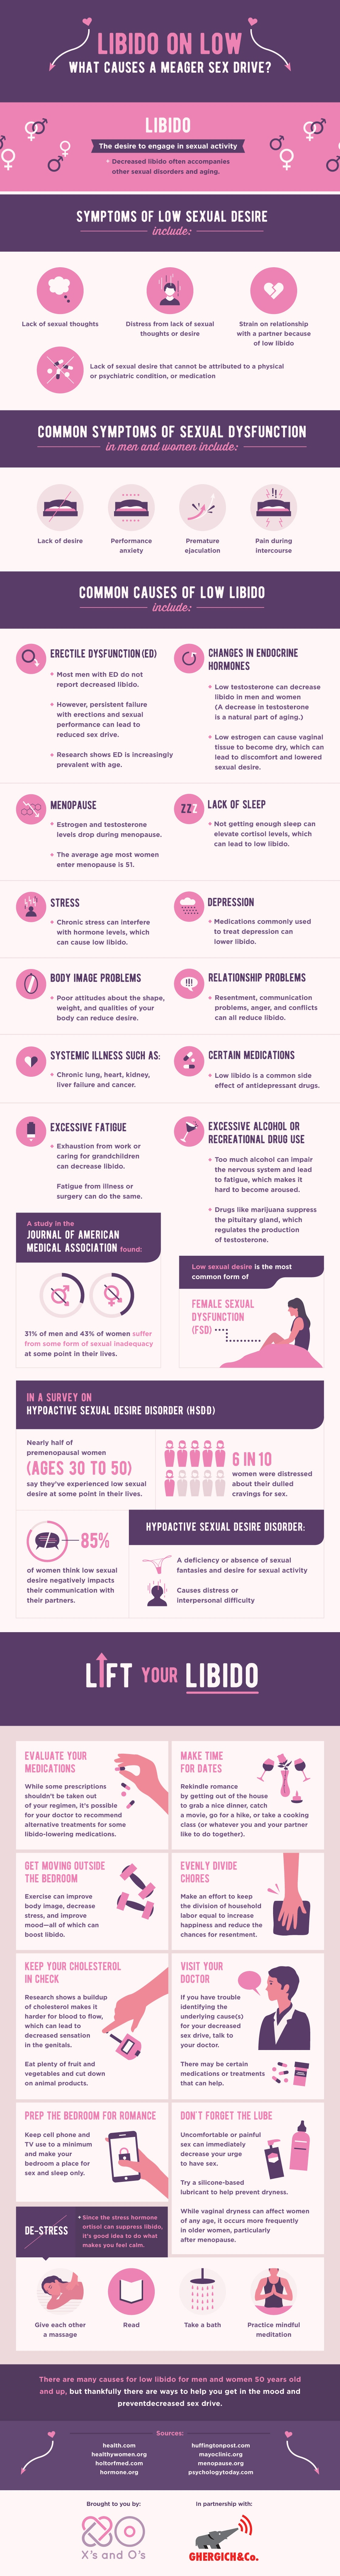 The Reason Behind Low Libido - Infographic